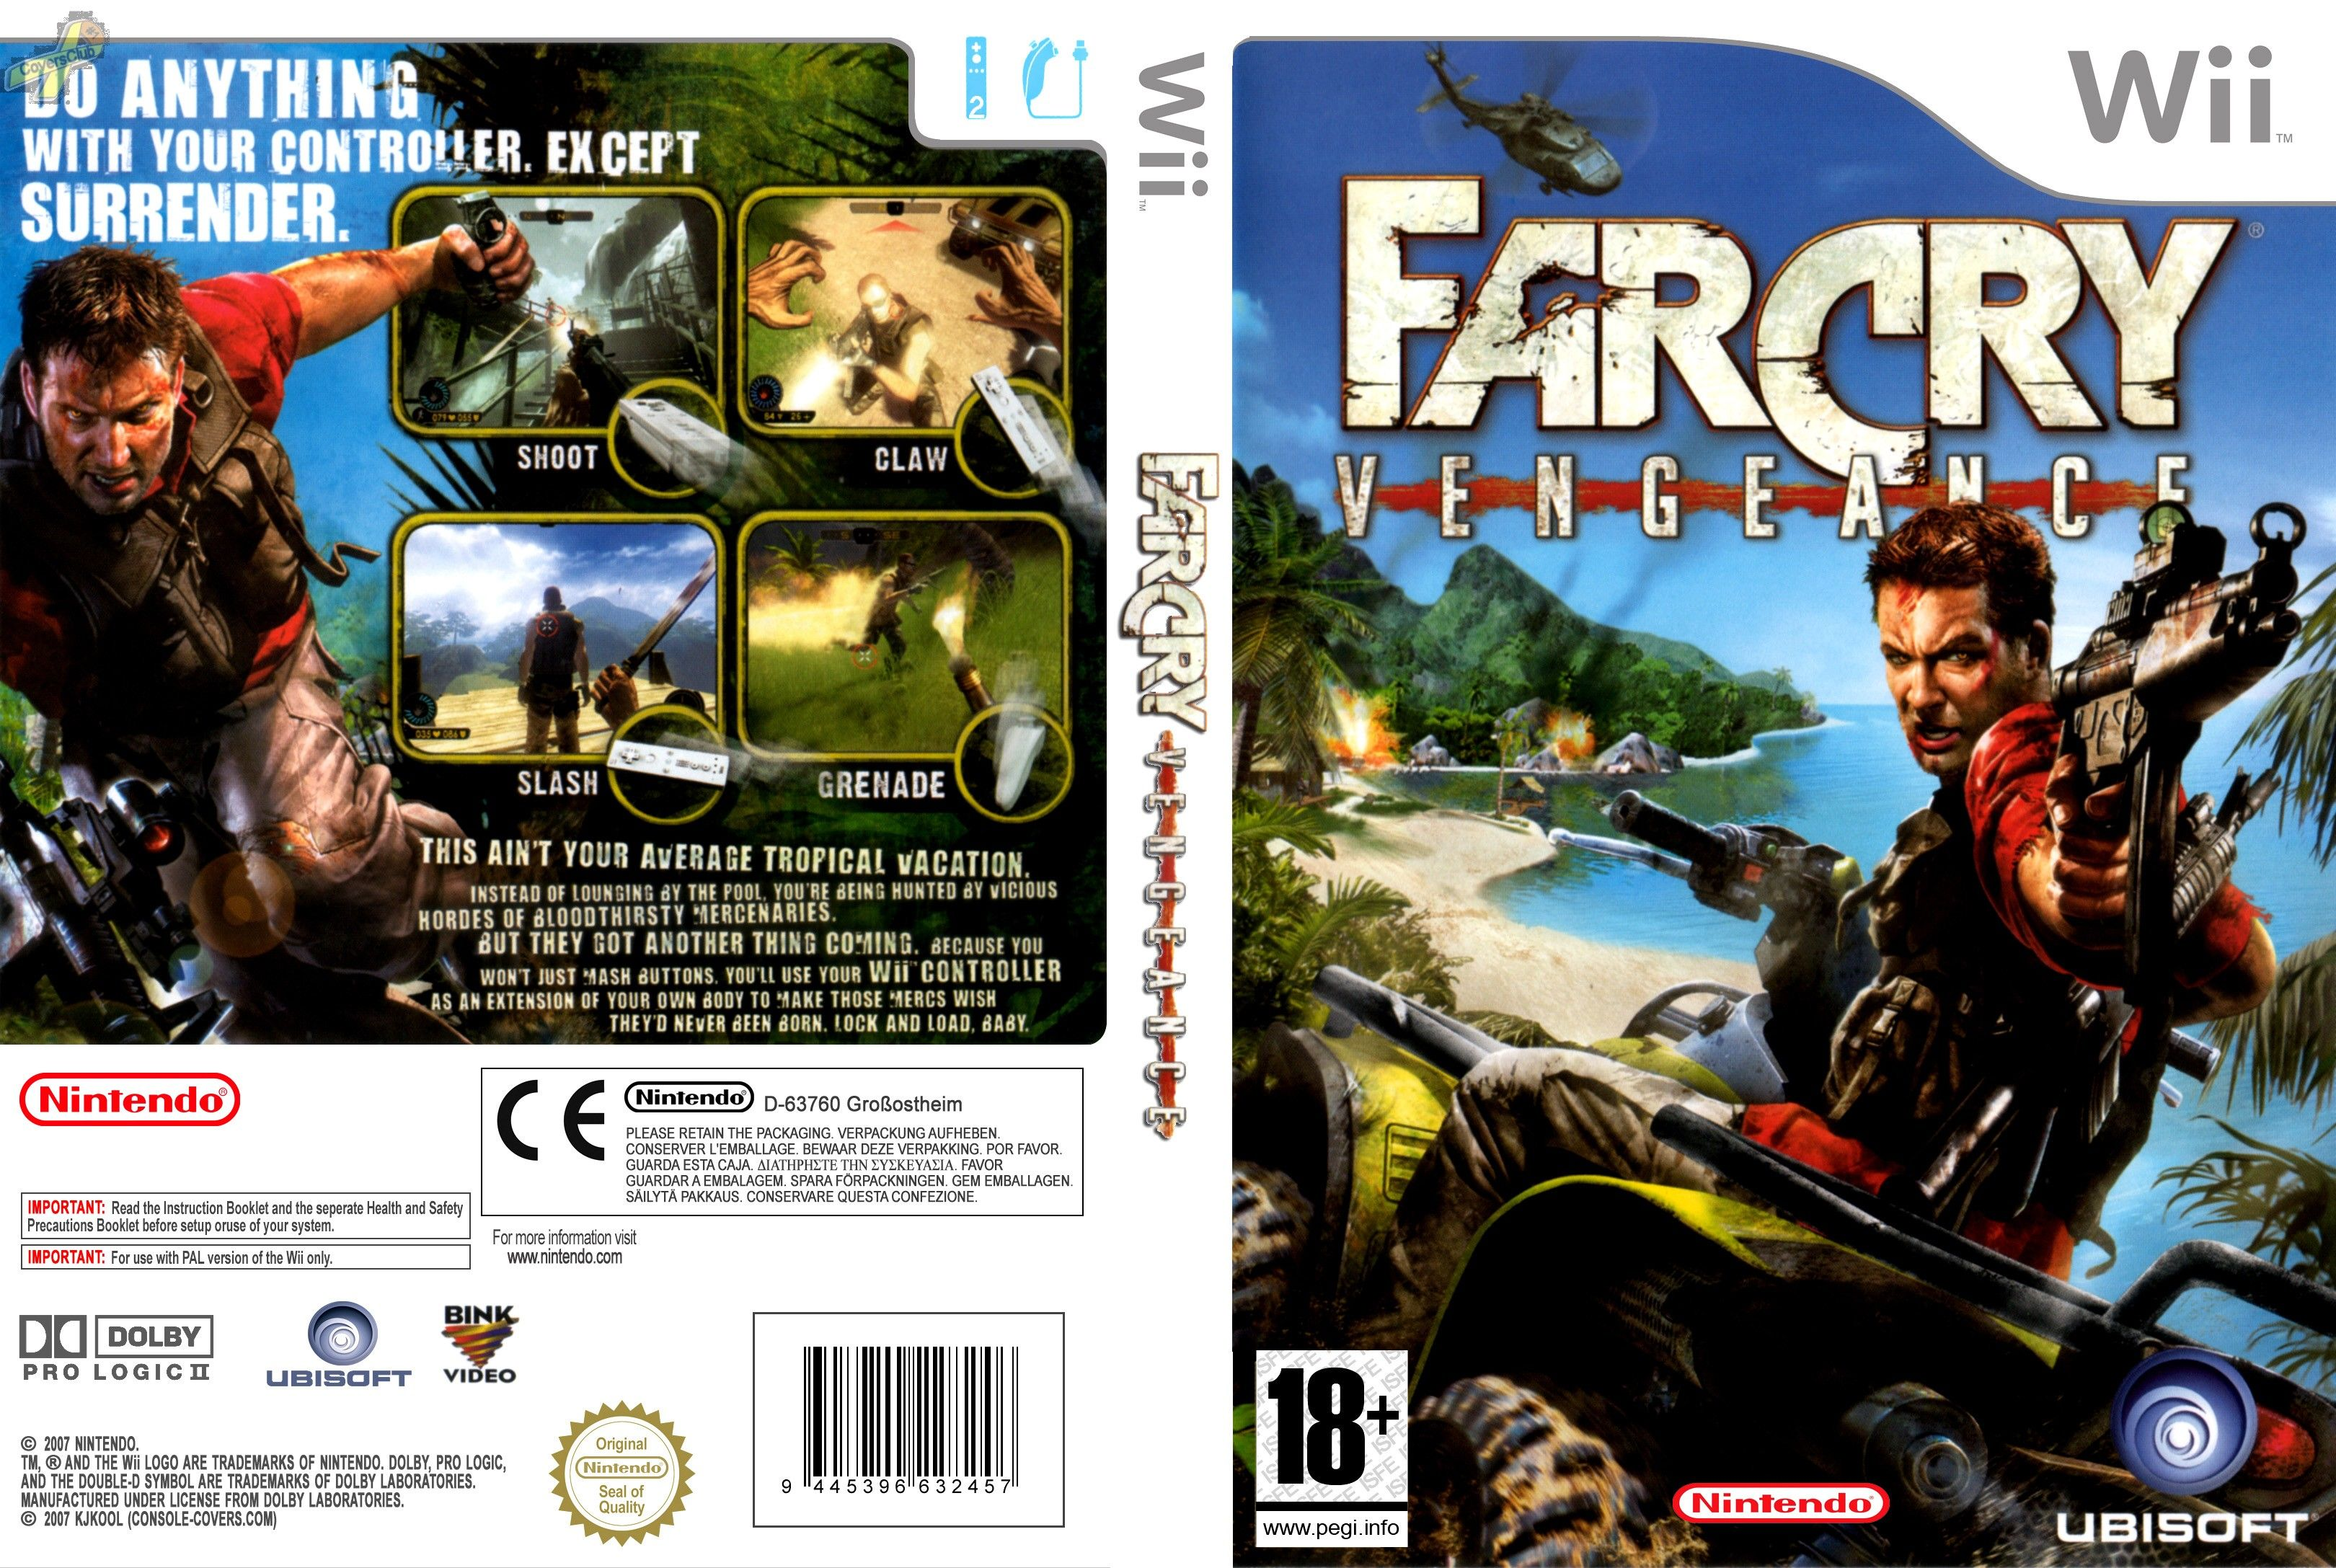 Far Cry Vengeance Wii Full Wii Covers Cover Century Over 500 000 Album Art Covers For Free